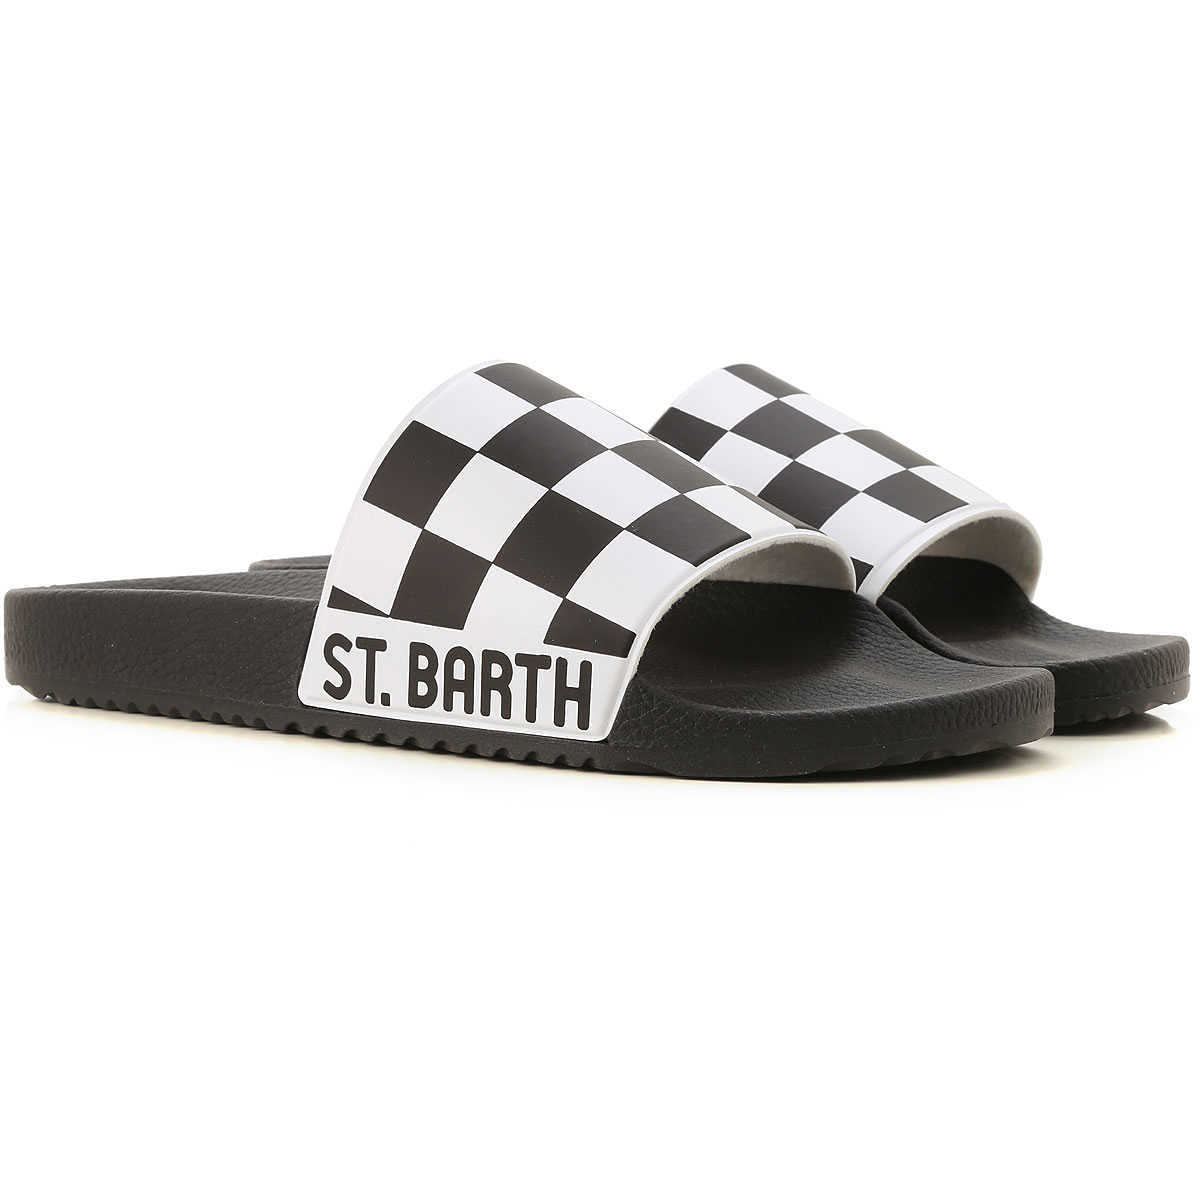 Mc2 Saint Barth Flip Flops for Men in Outlet Black Canada - GOOFASH - Mens SLIPPERS